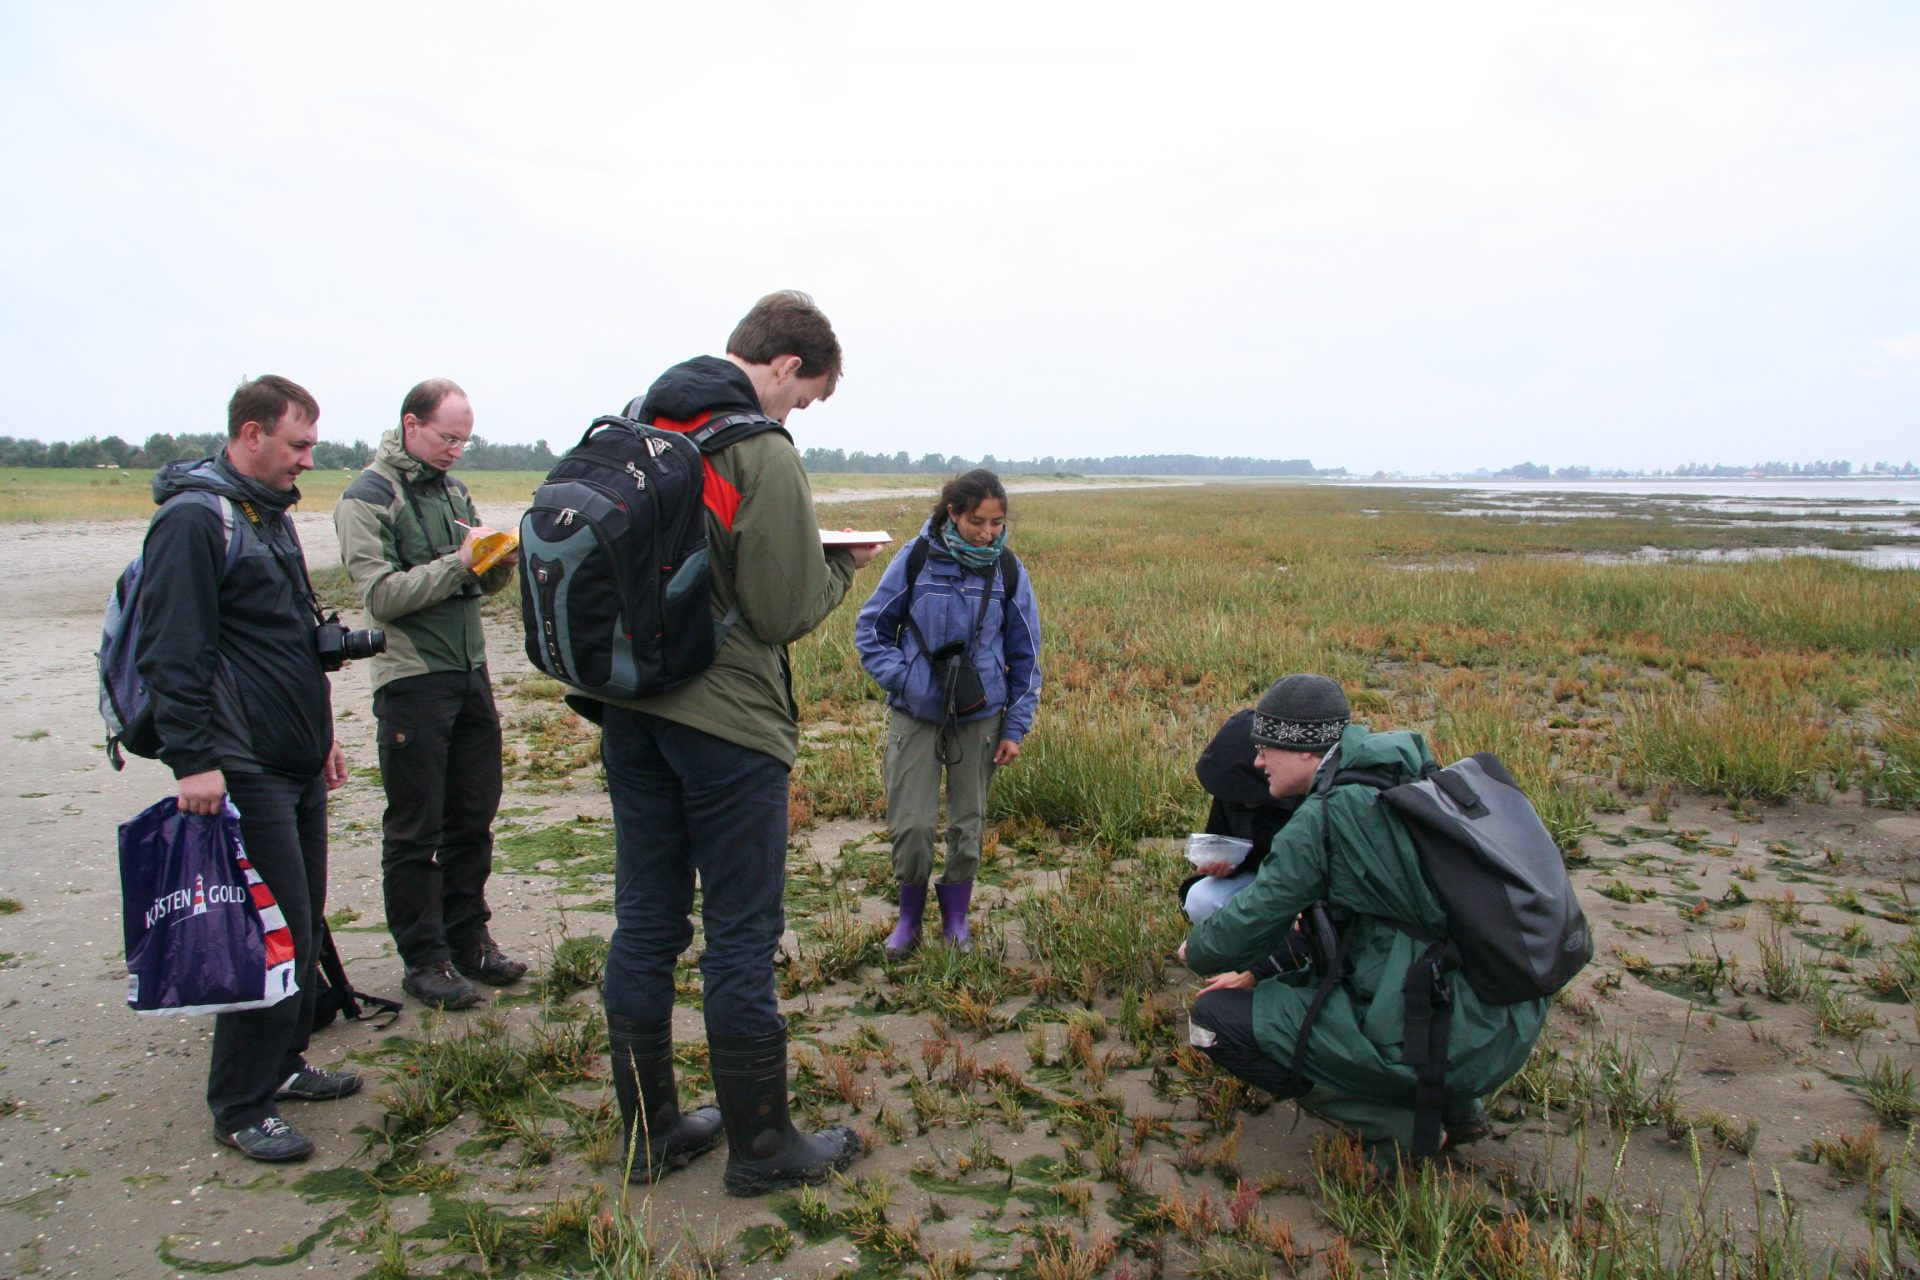 At the Wattenmeer (Wadden Sea) along the North Sea coast in Germany in May 2013. From left to right Petr Kosachev, Eike Mayland-Quellhorst, Dirk Albach, Carolina García, Simon Pfanzelt. Photo by Heidi Meudt.